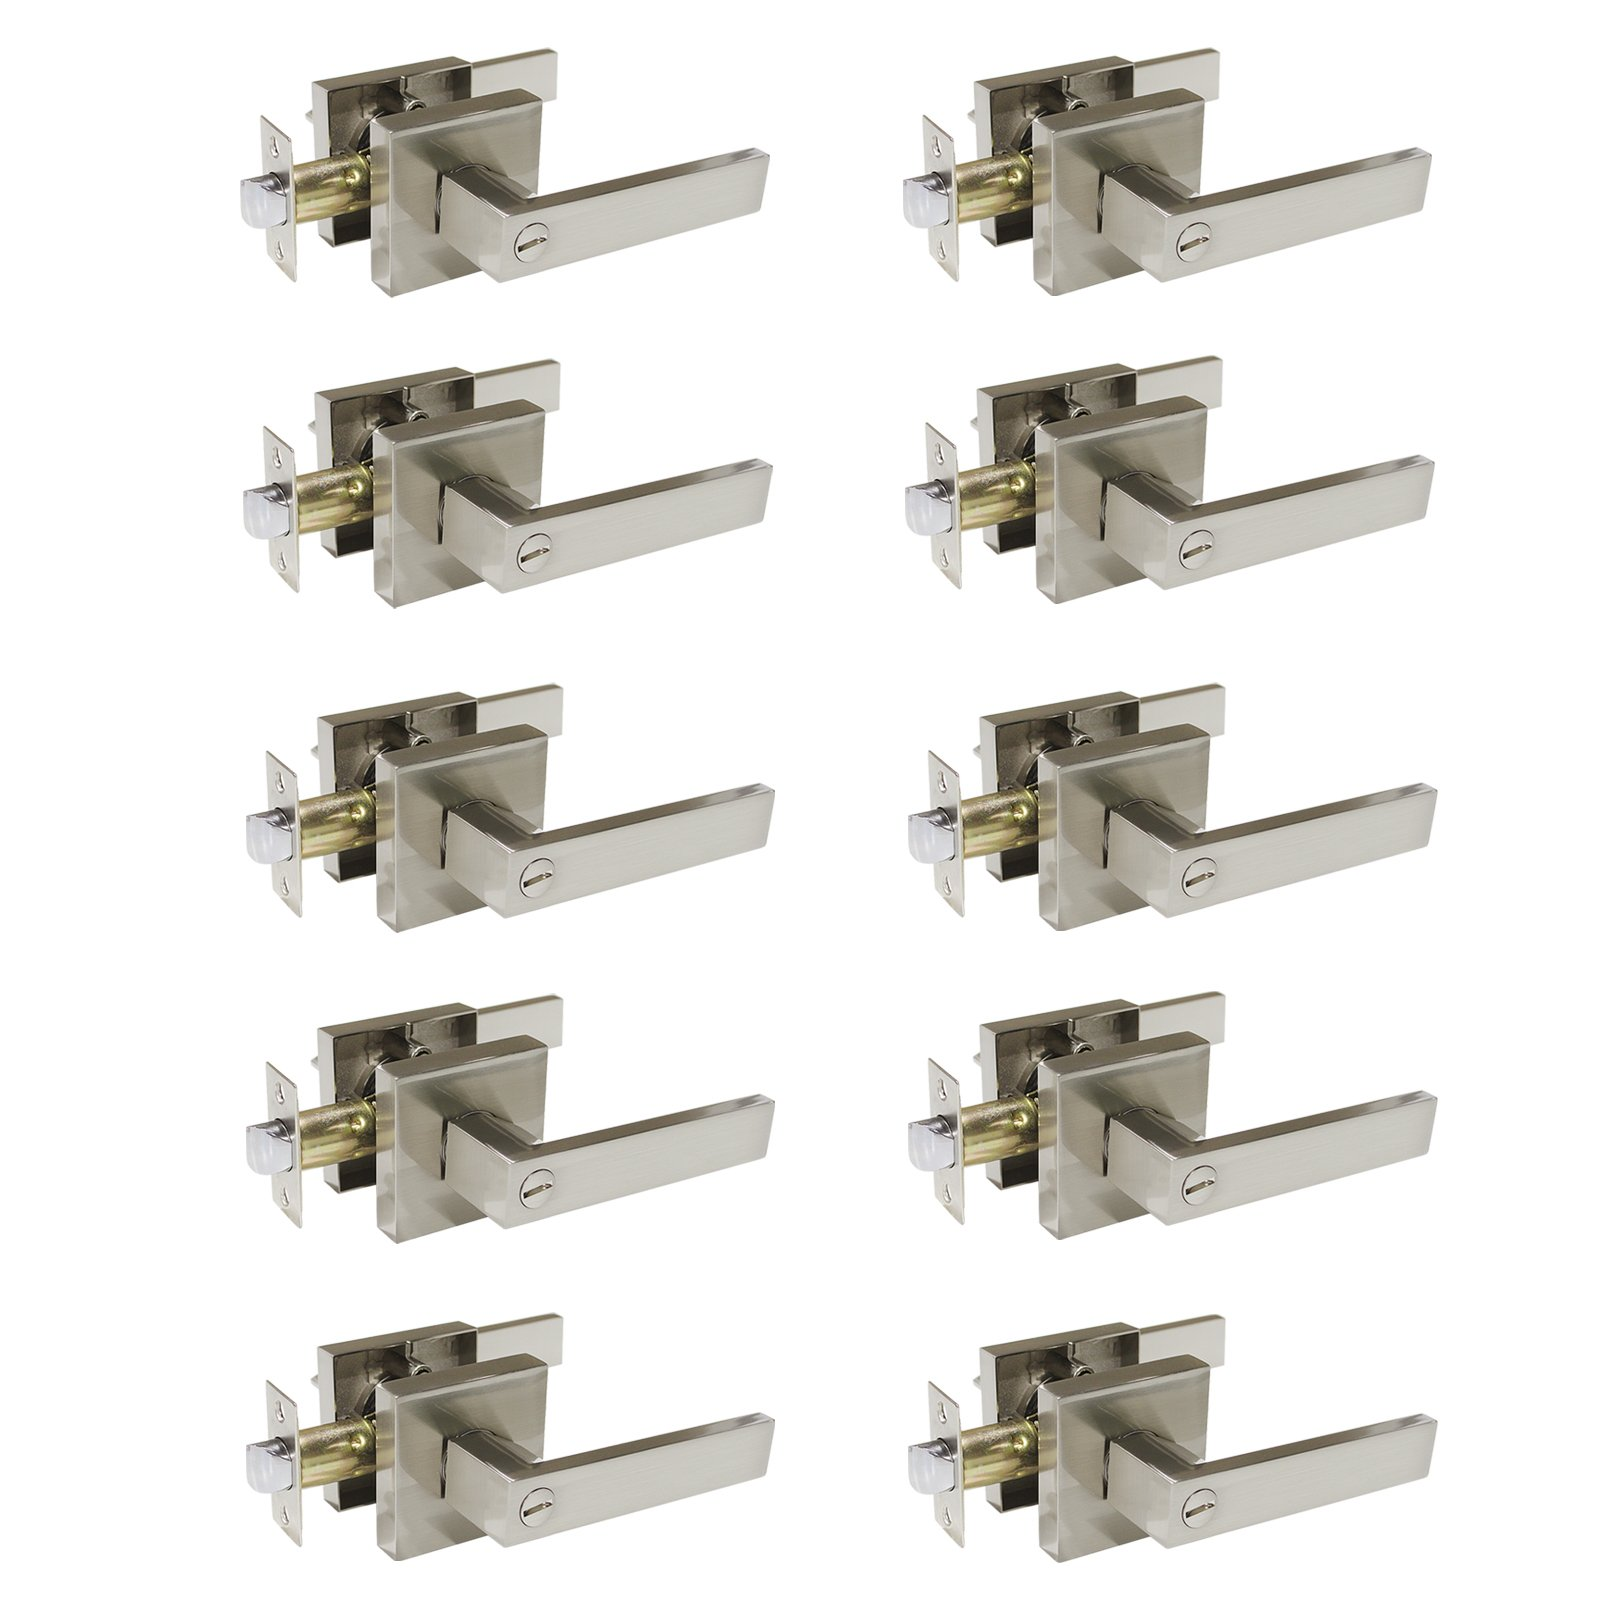 Gobrico Bedroom Bathroom Door Handle Lever with Square Plate Interior Privacy Door Lock in Satin Nickel 10Pack by Gobrico (Image #1)